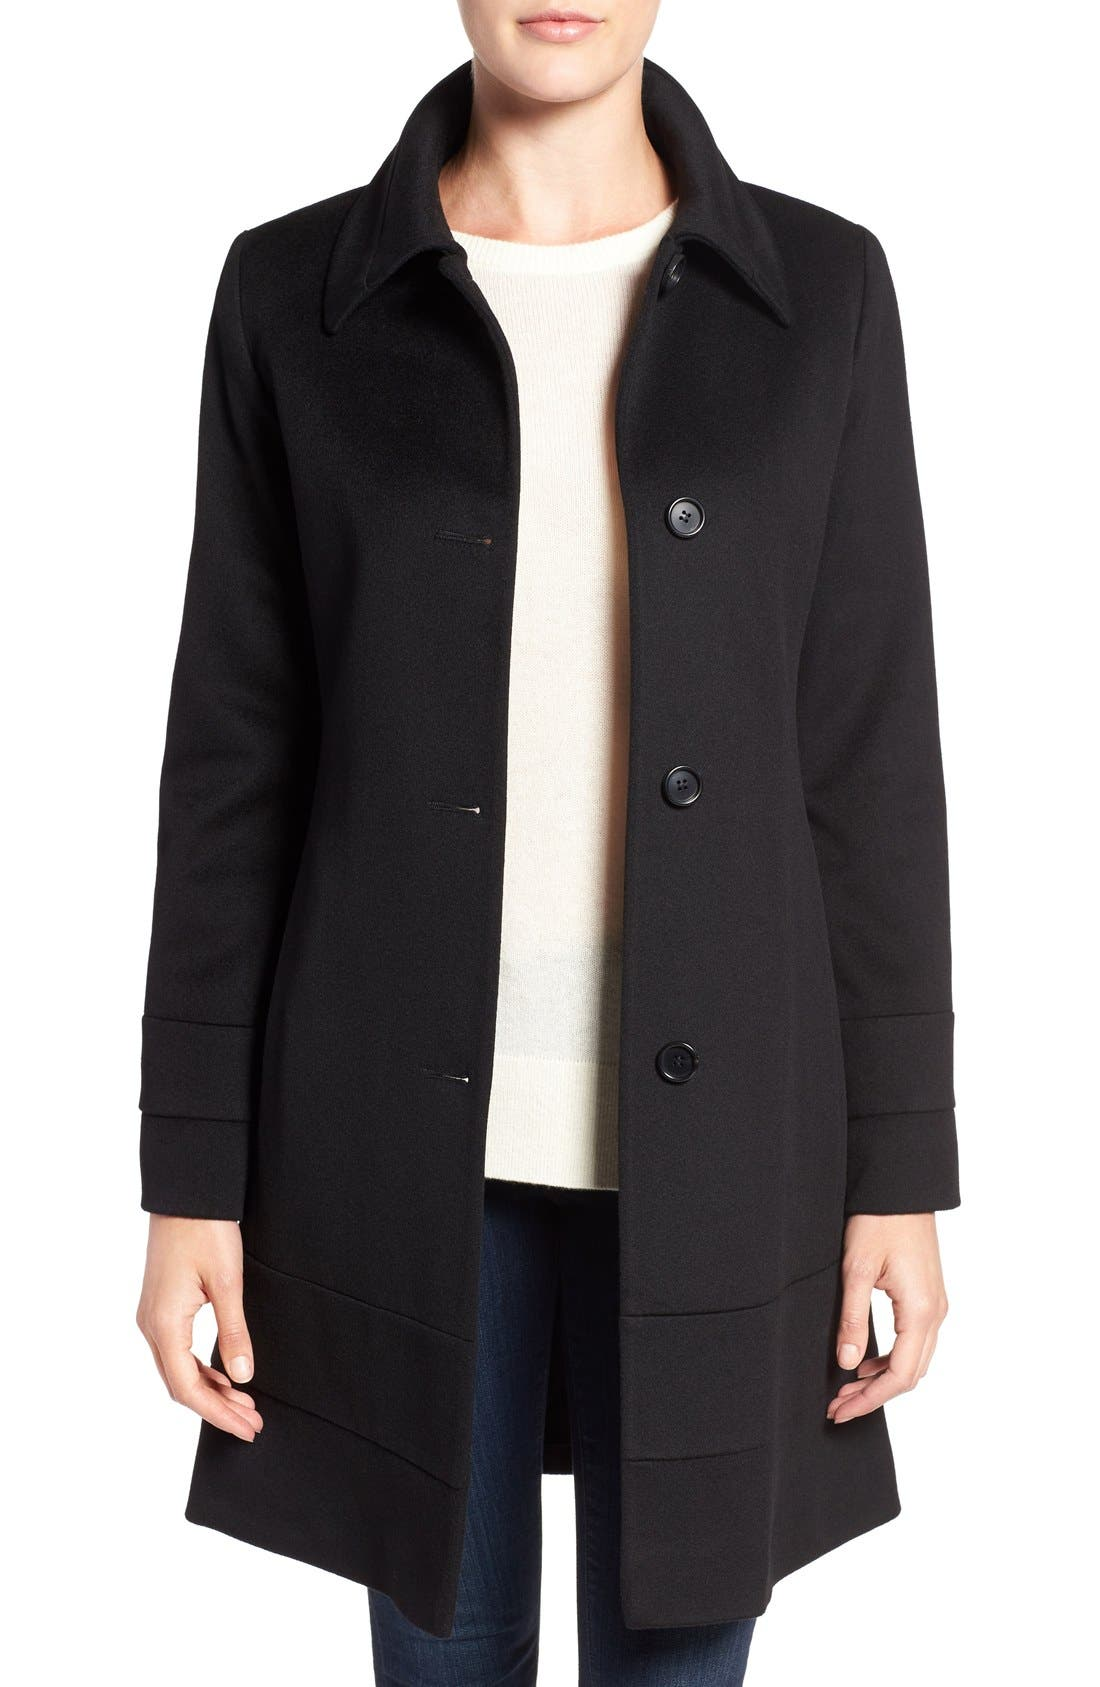 Alternate Image 1 Selected - Fleurette Fit & Flare Wool Coat (Regular & Petite)